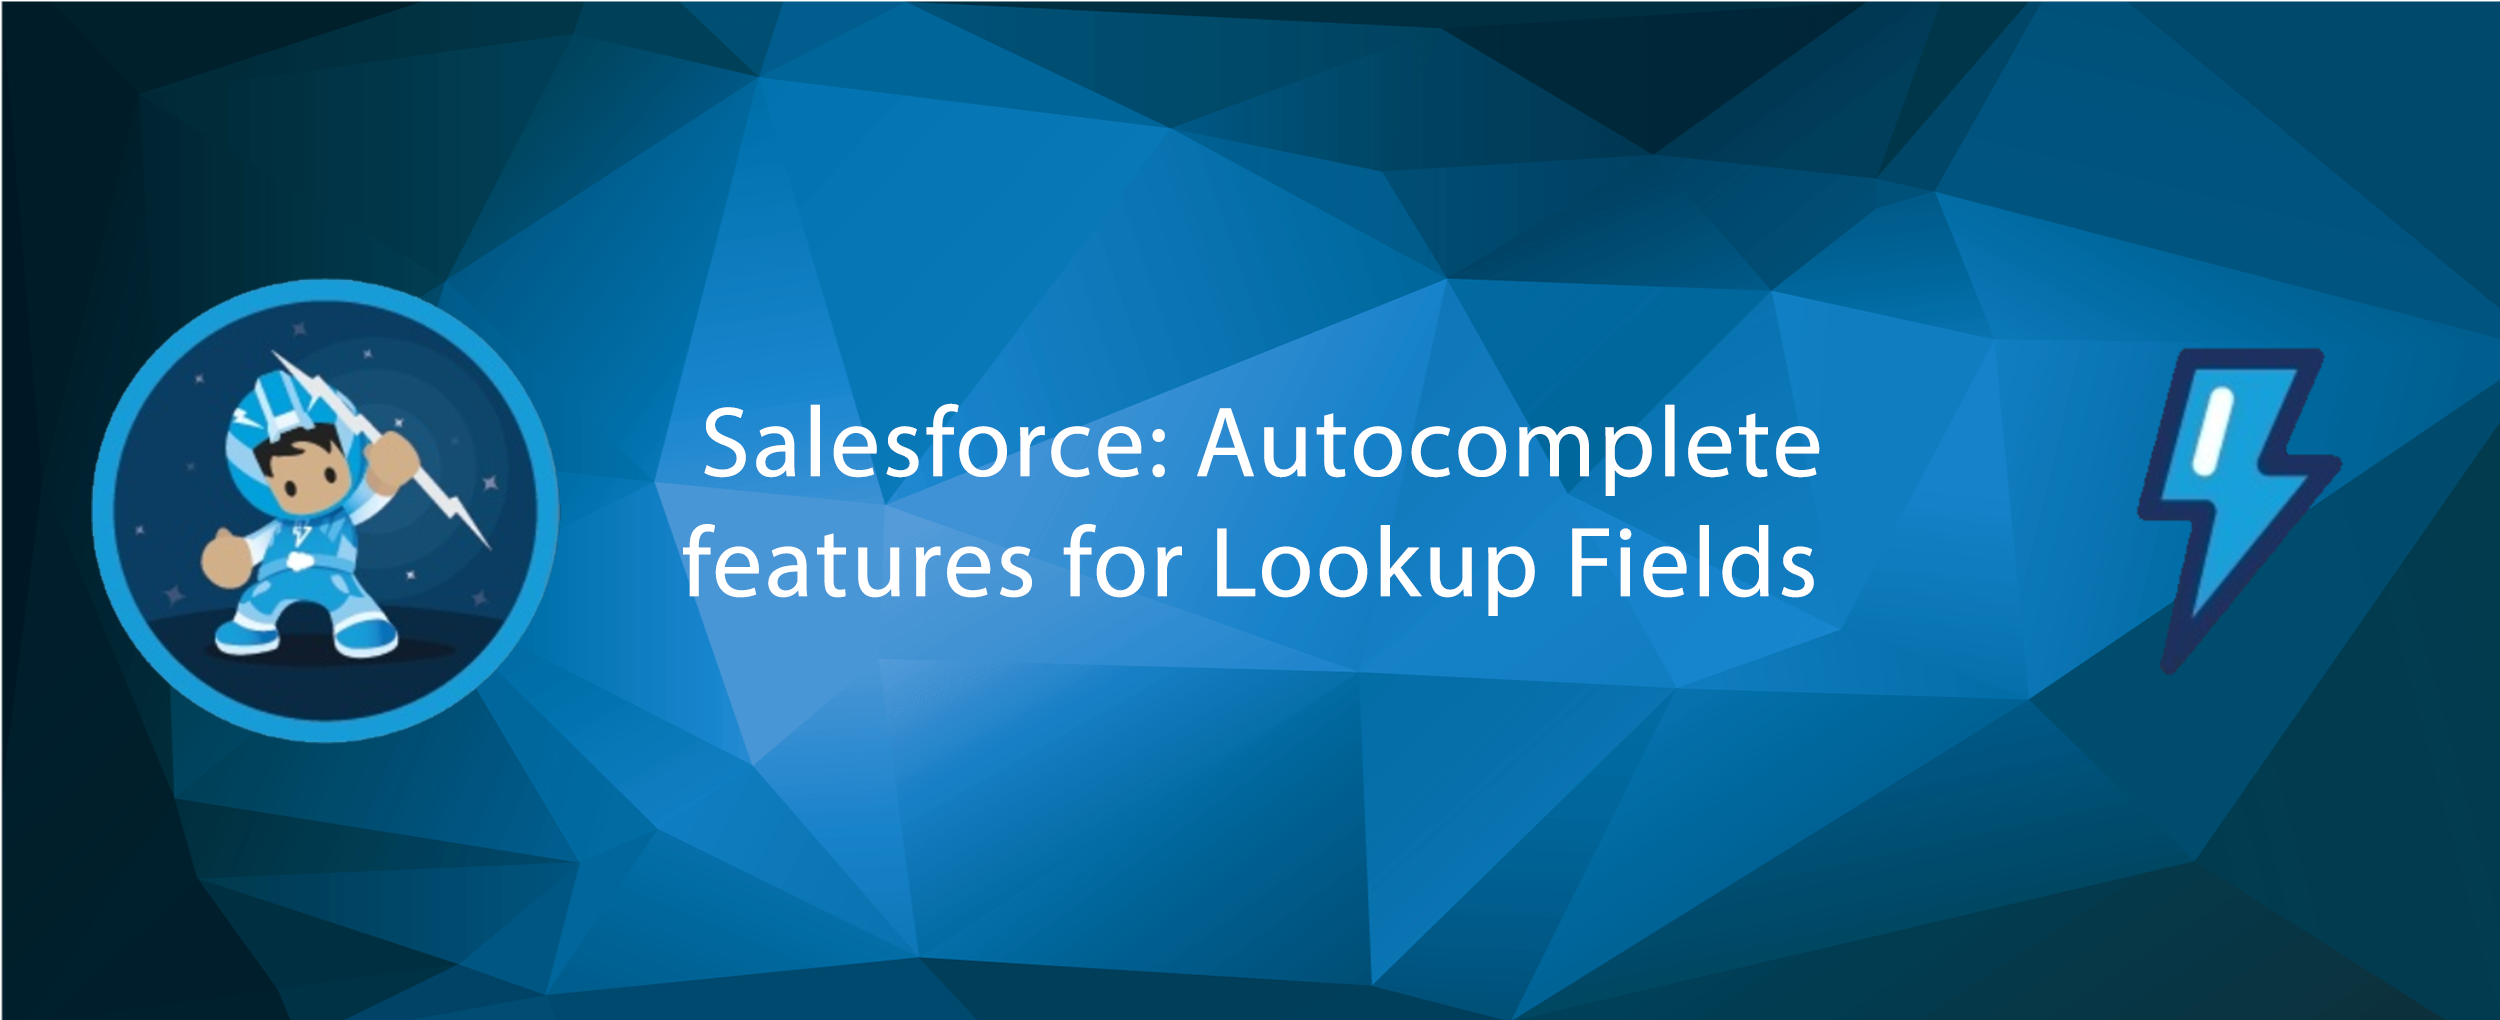 Salesforce: Autocomplete features for Lookup Fields